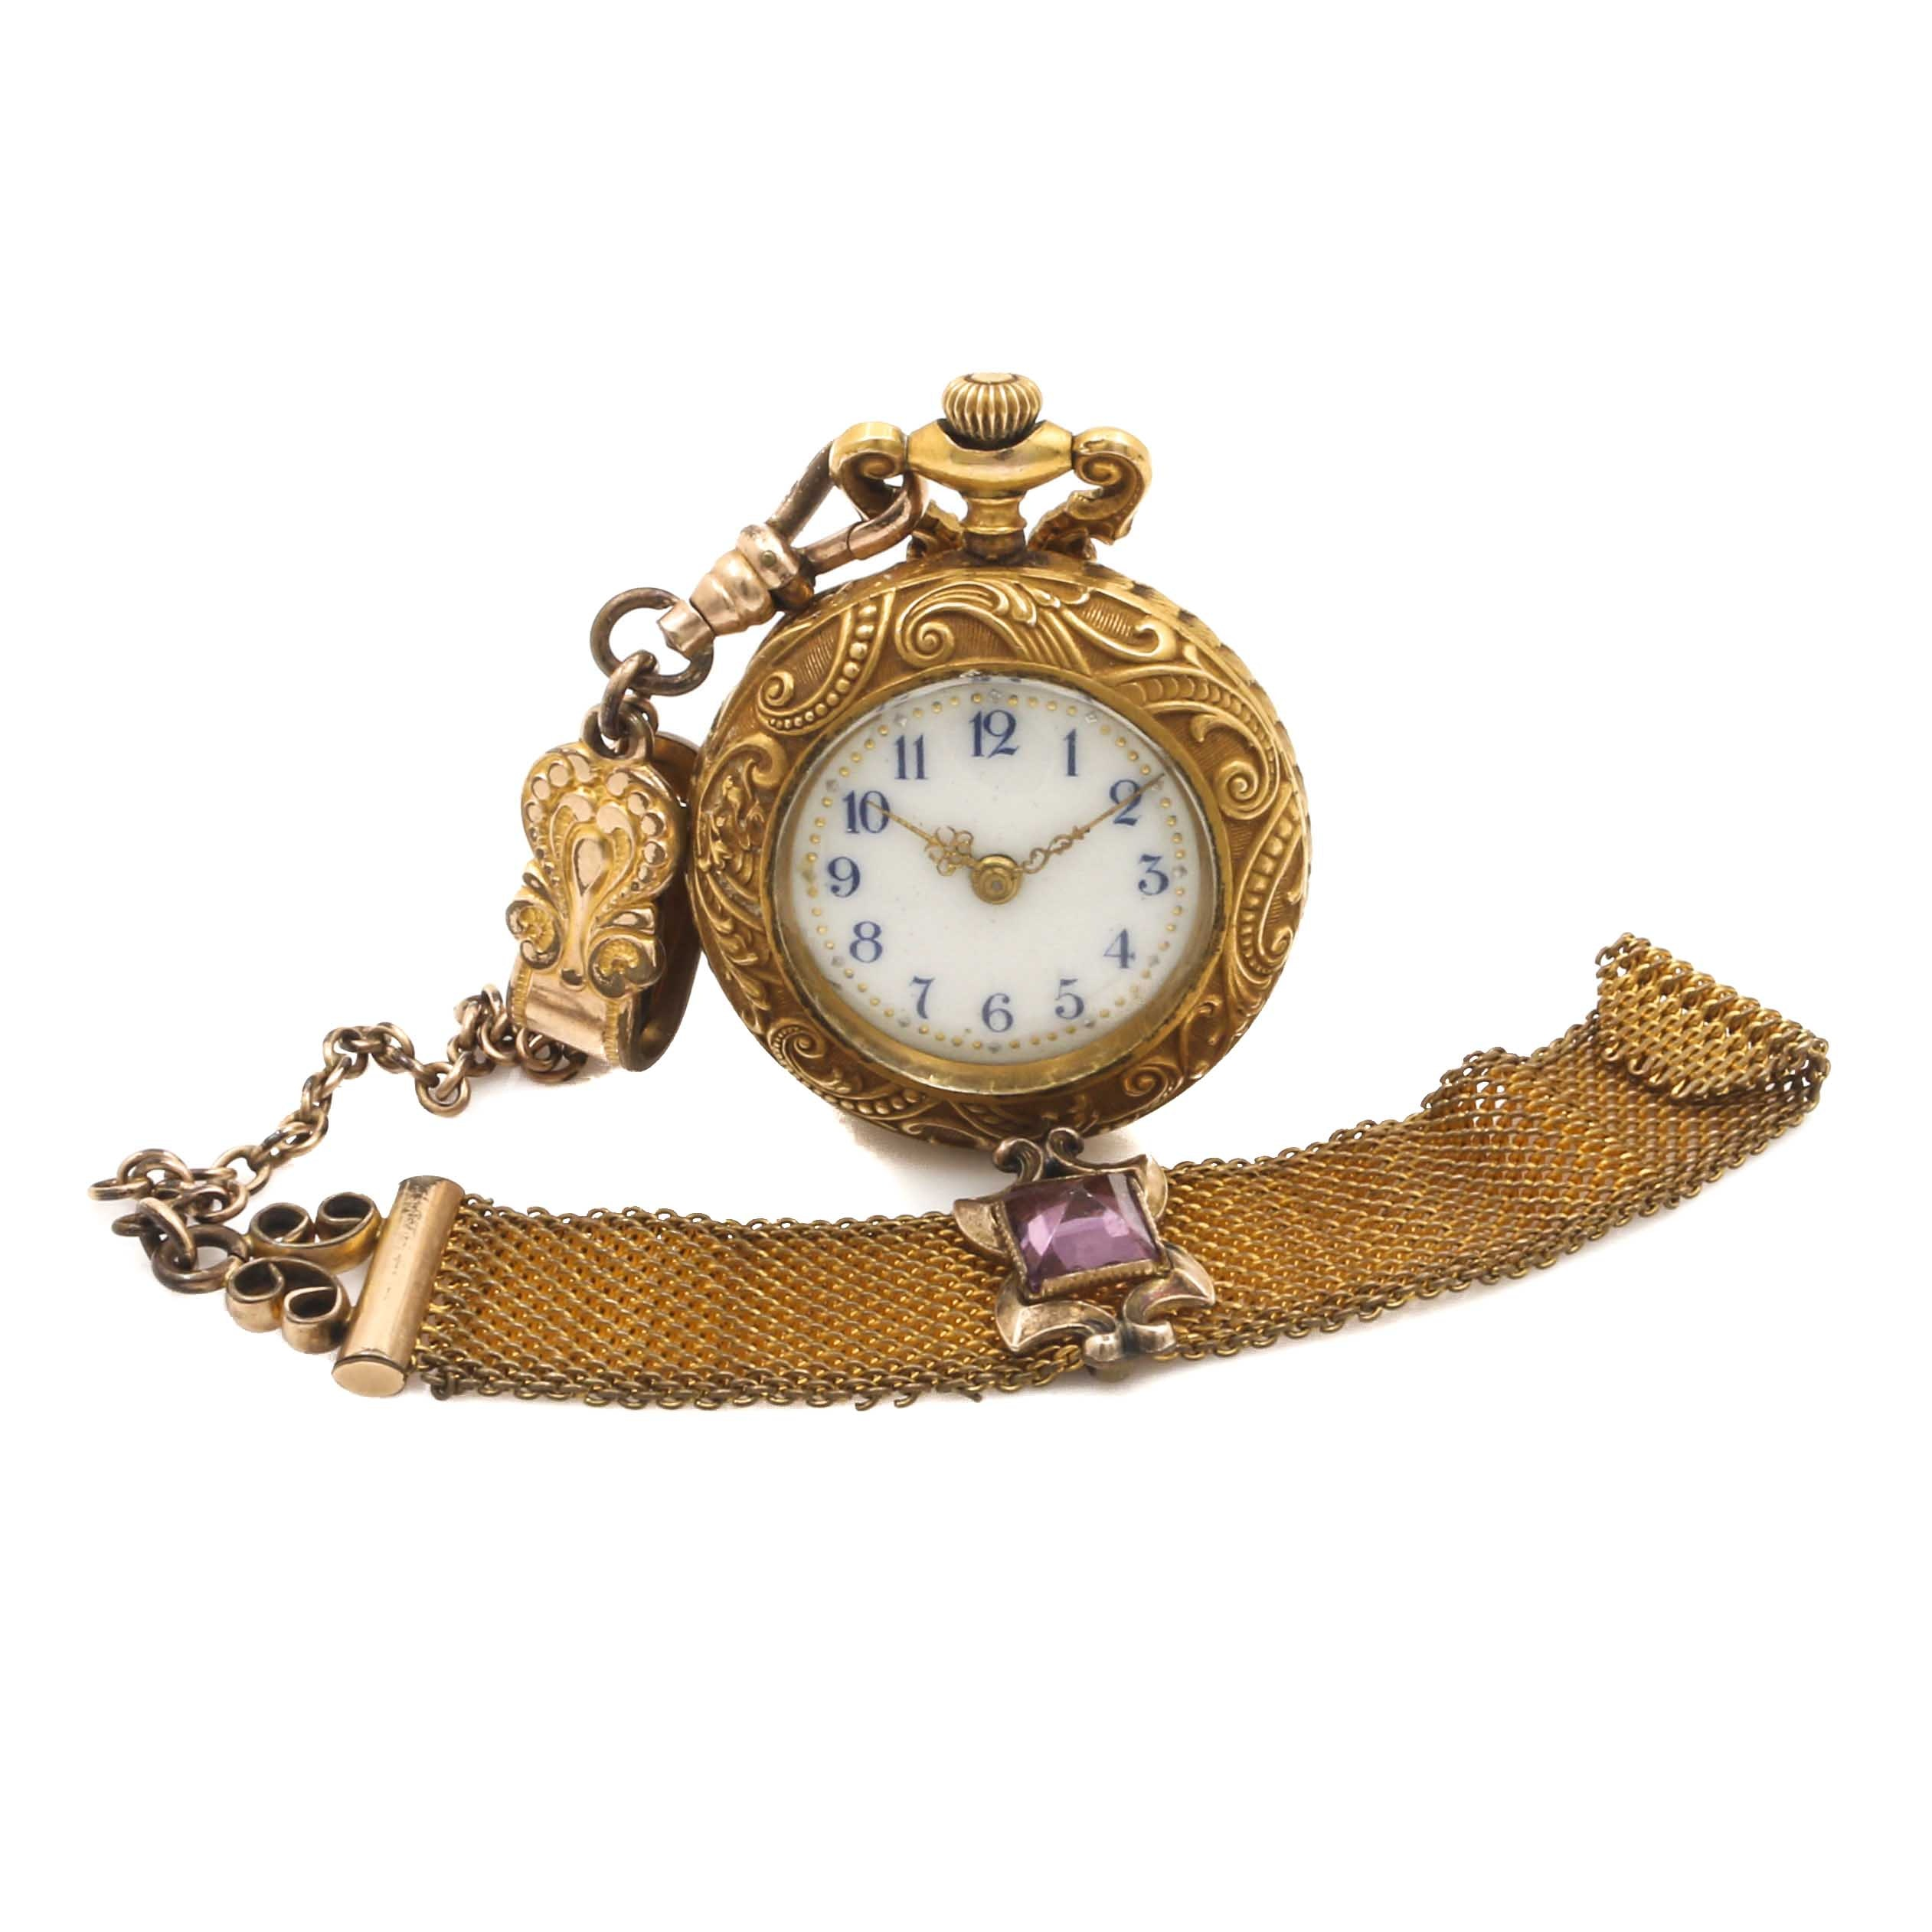 Gold Tone Pocket Watch, Chain and Fob